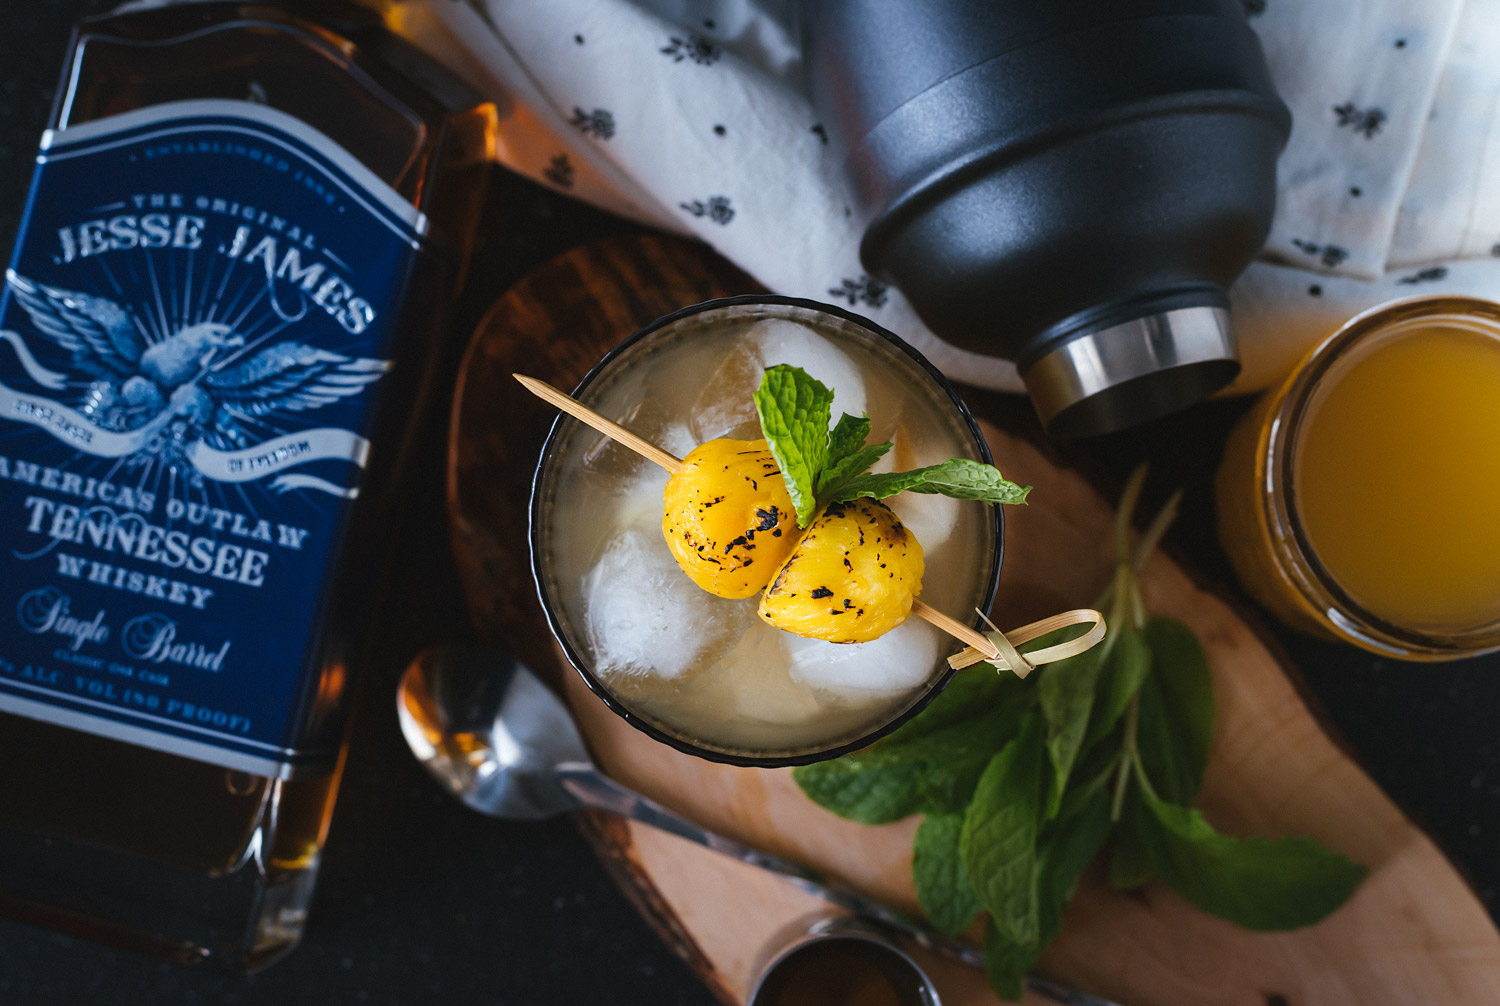 Hula Fashioned is a tiki version of an Old Fashioned using Jesse James Single Barrel Whiskey, pineapple simple syrup, bitters, and a sweep of mint. It's a boozy cocktail with notes of smokiness, fruit, and a hint of mint. #sponsored #jessejameswhiskey #jessejamessinglebarrel #ElleTalk #CocktailRecipe #Whiskey #OldFashioned